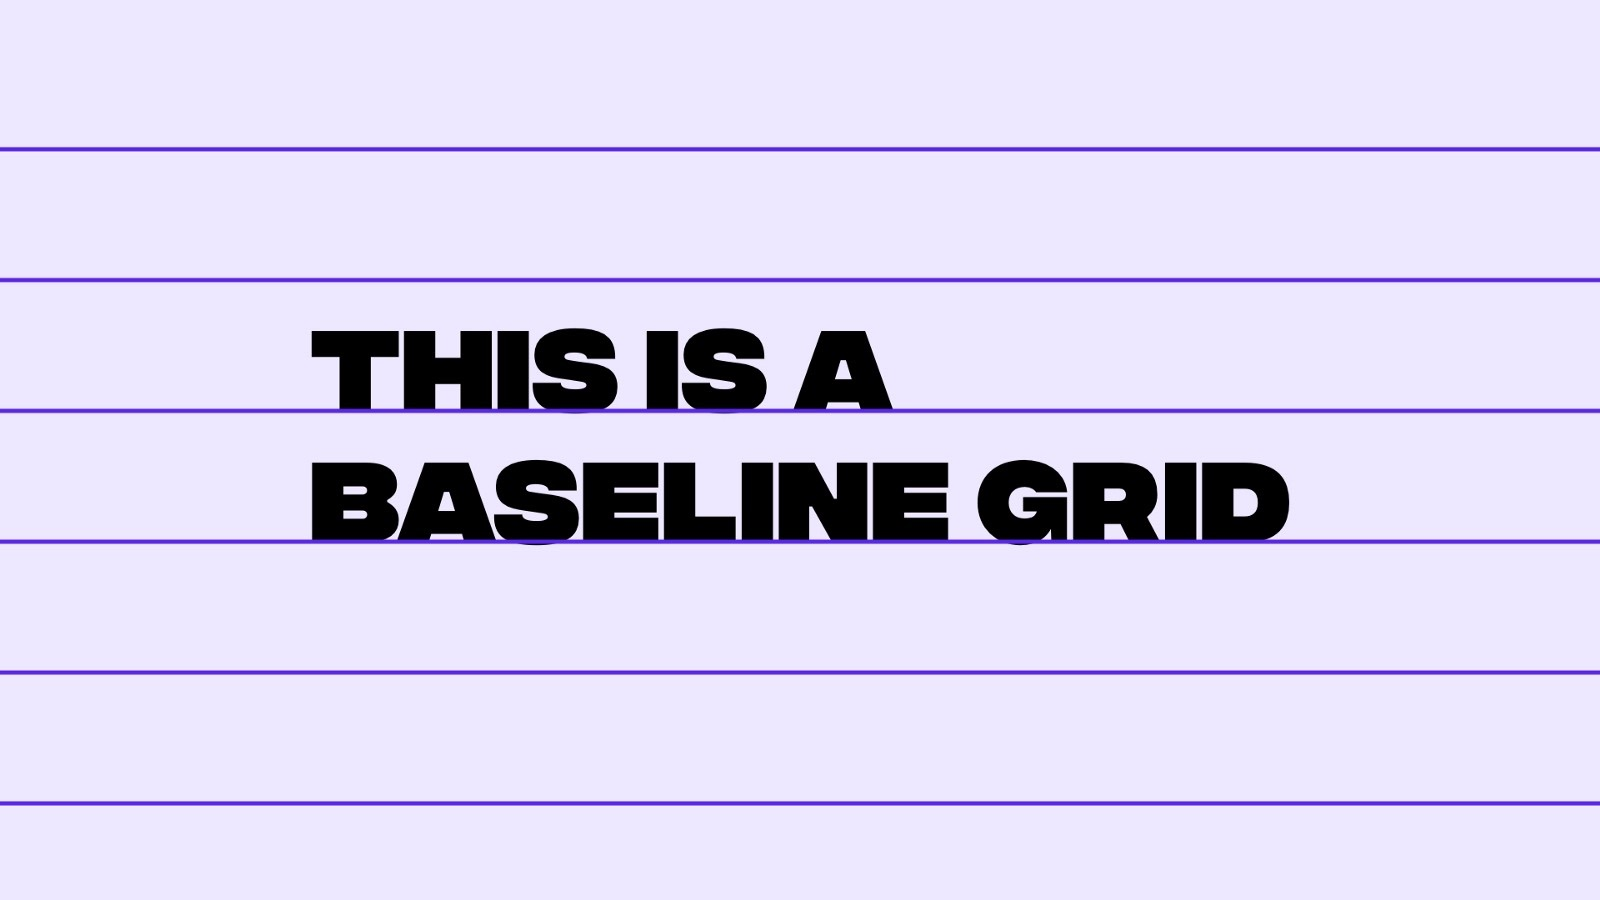 Example of a baseline grid